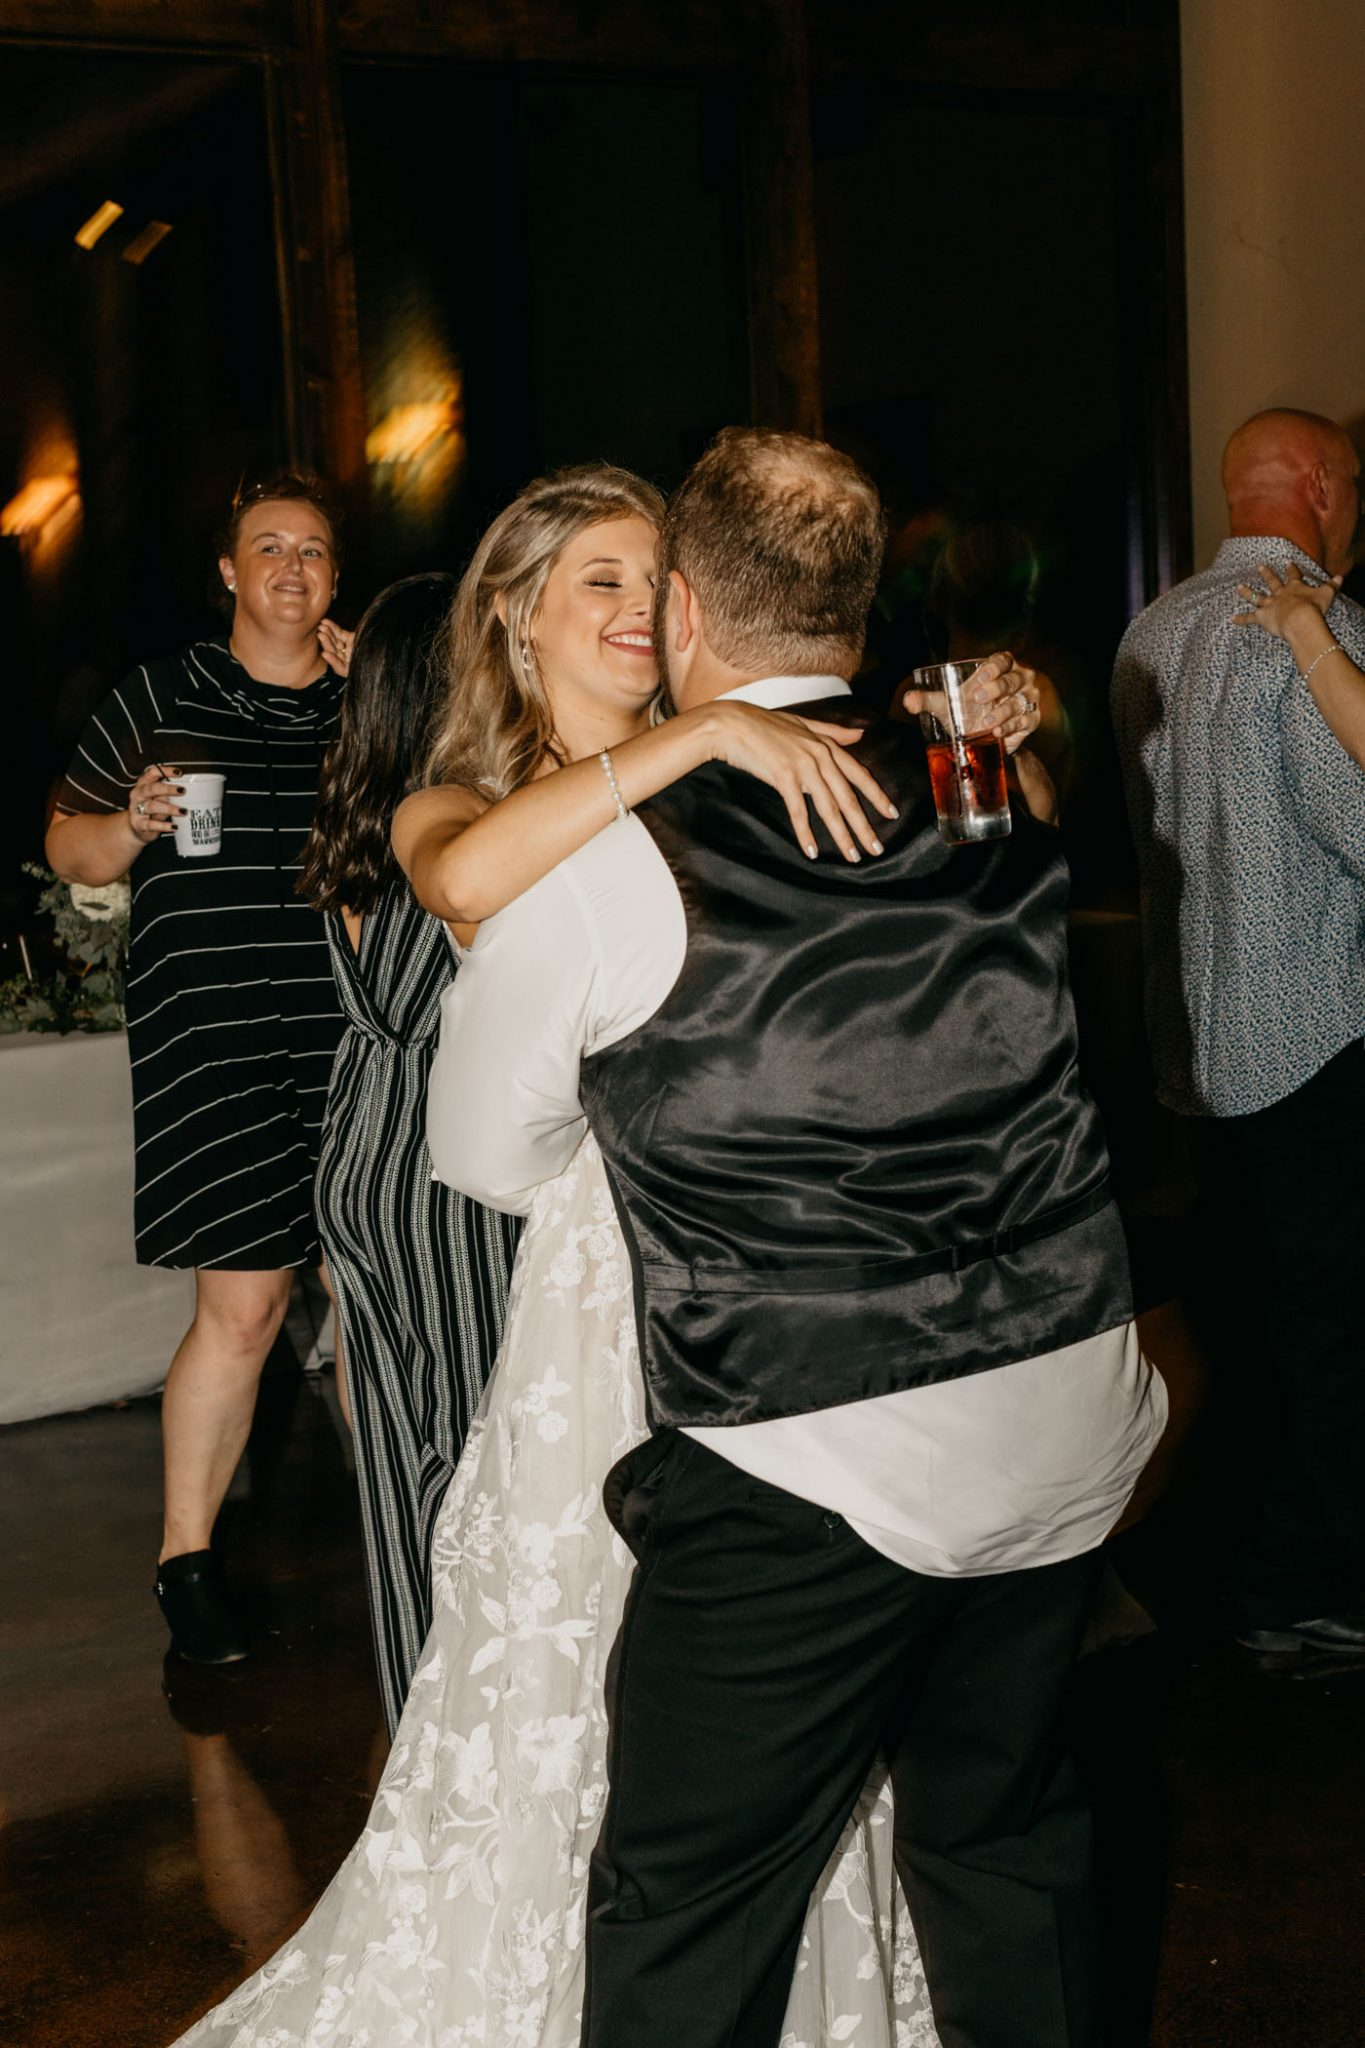 bride and groom having fun by dancing and celebrating their recent marriage